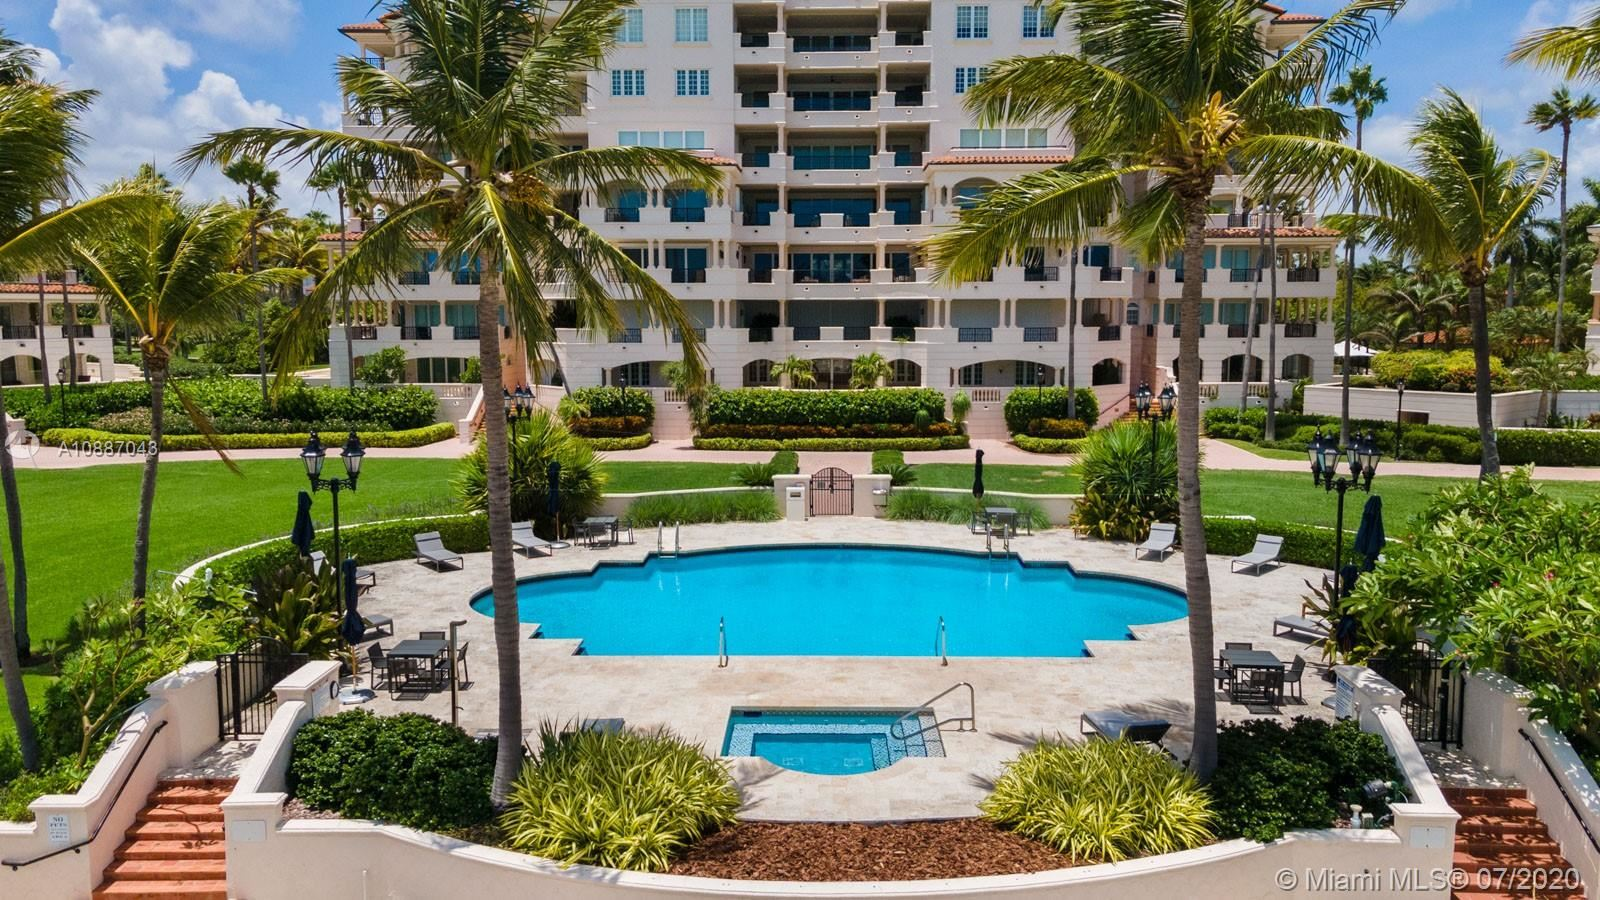 Photo 26 of Listing MLS a10887043 in 7764 Fisher Island Dr #7764 Miami Beach FL 33109